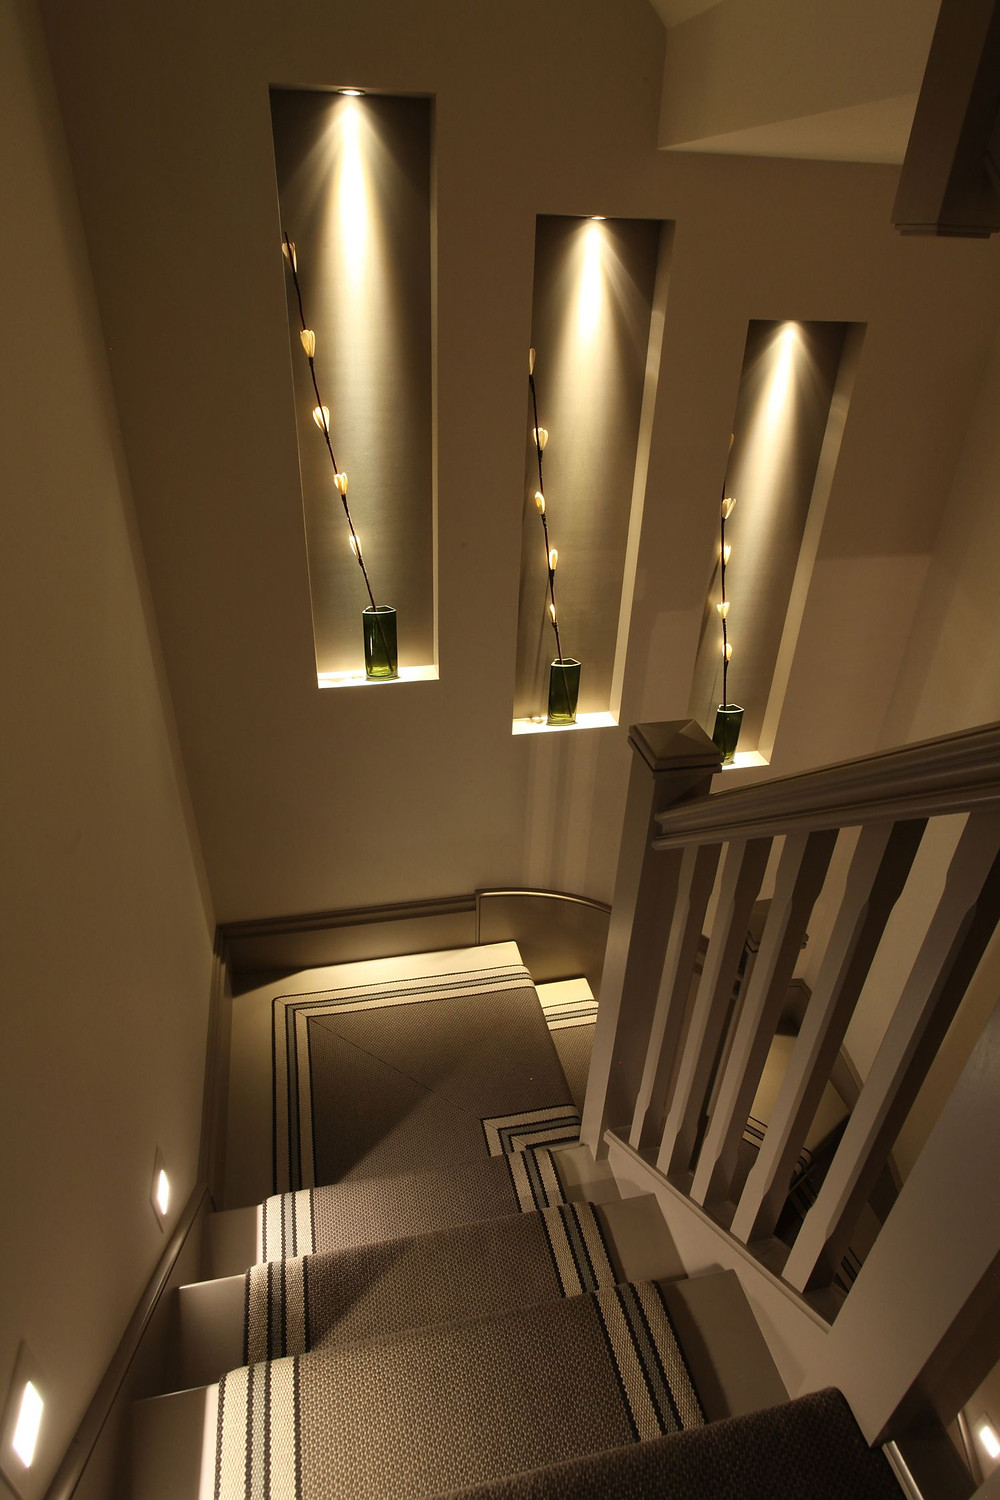 Figure 2 illustrates accent lighting within the wall alcoves – Image credit pintrest